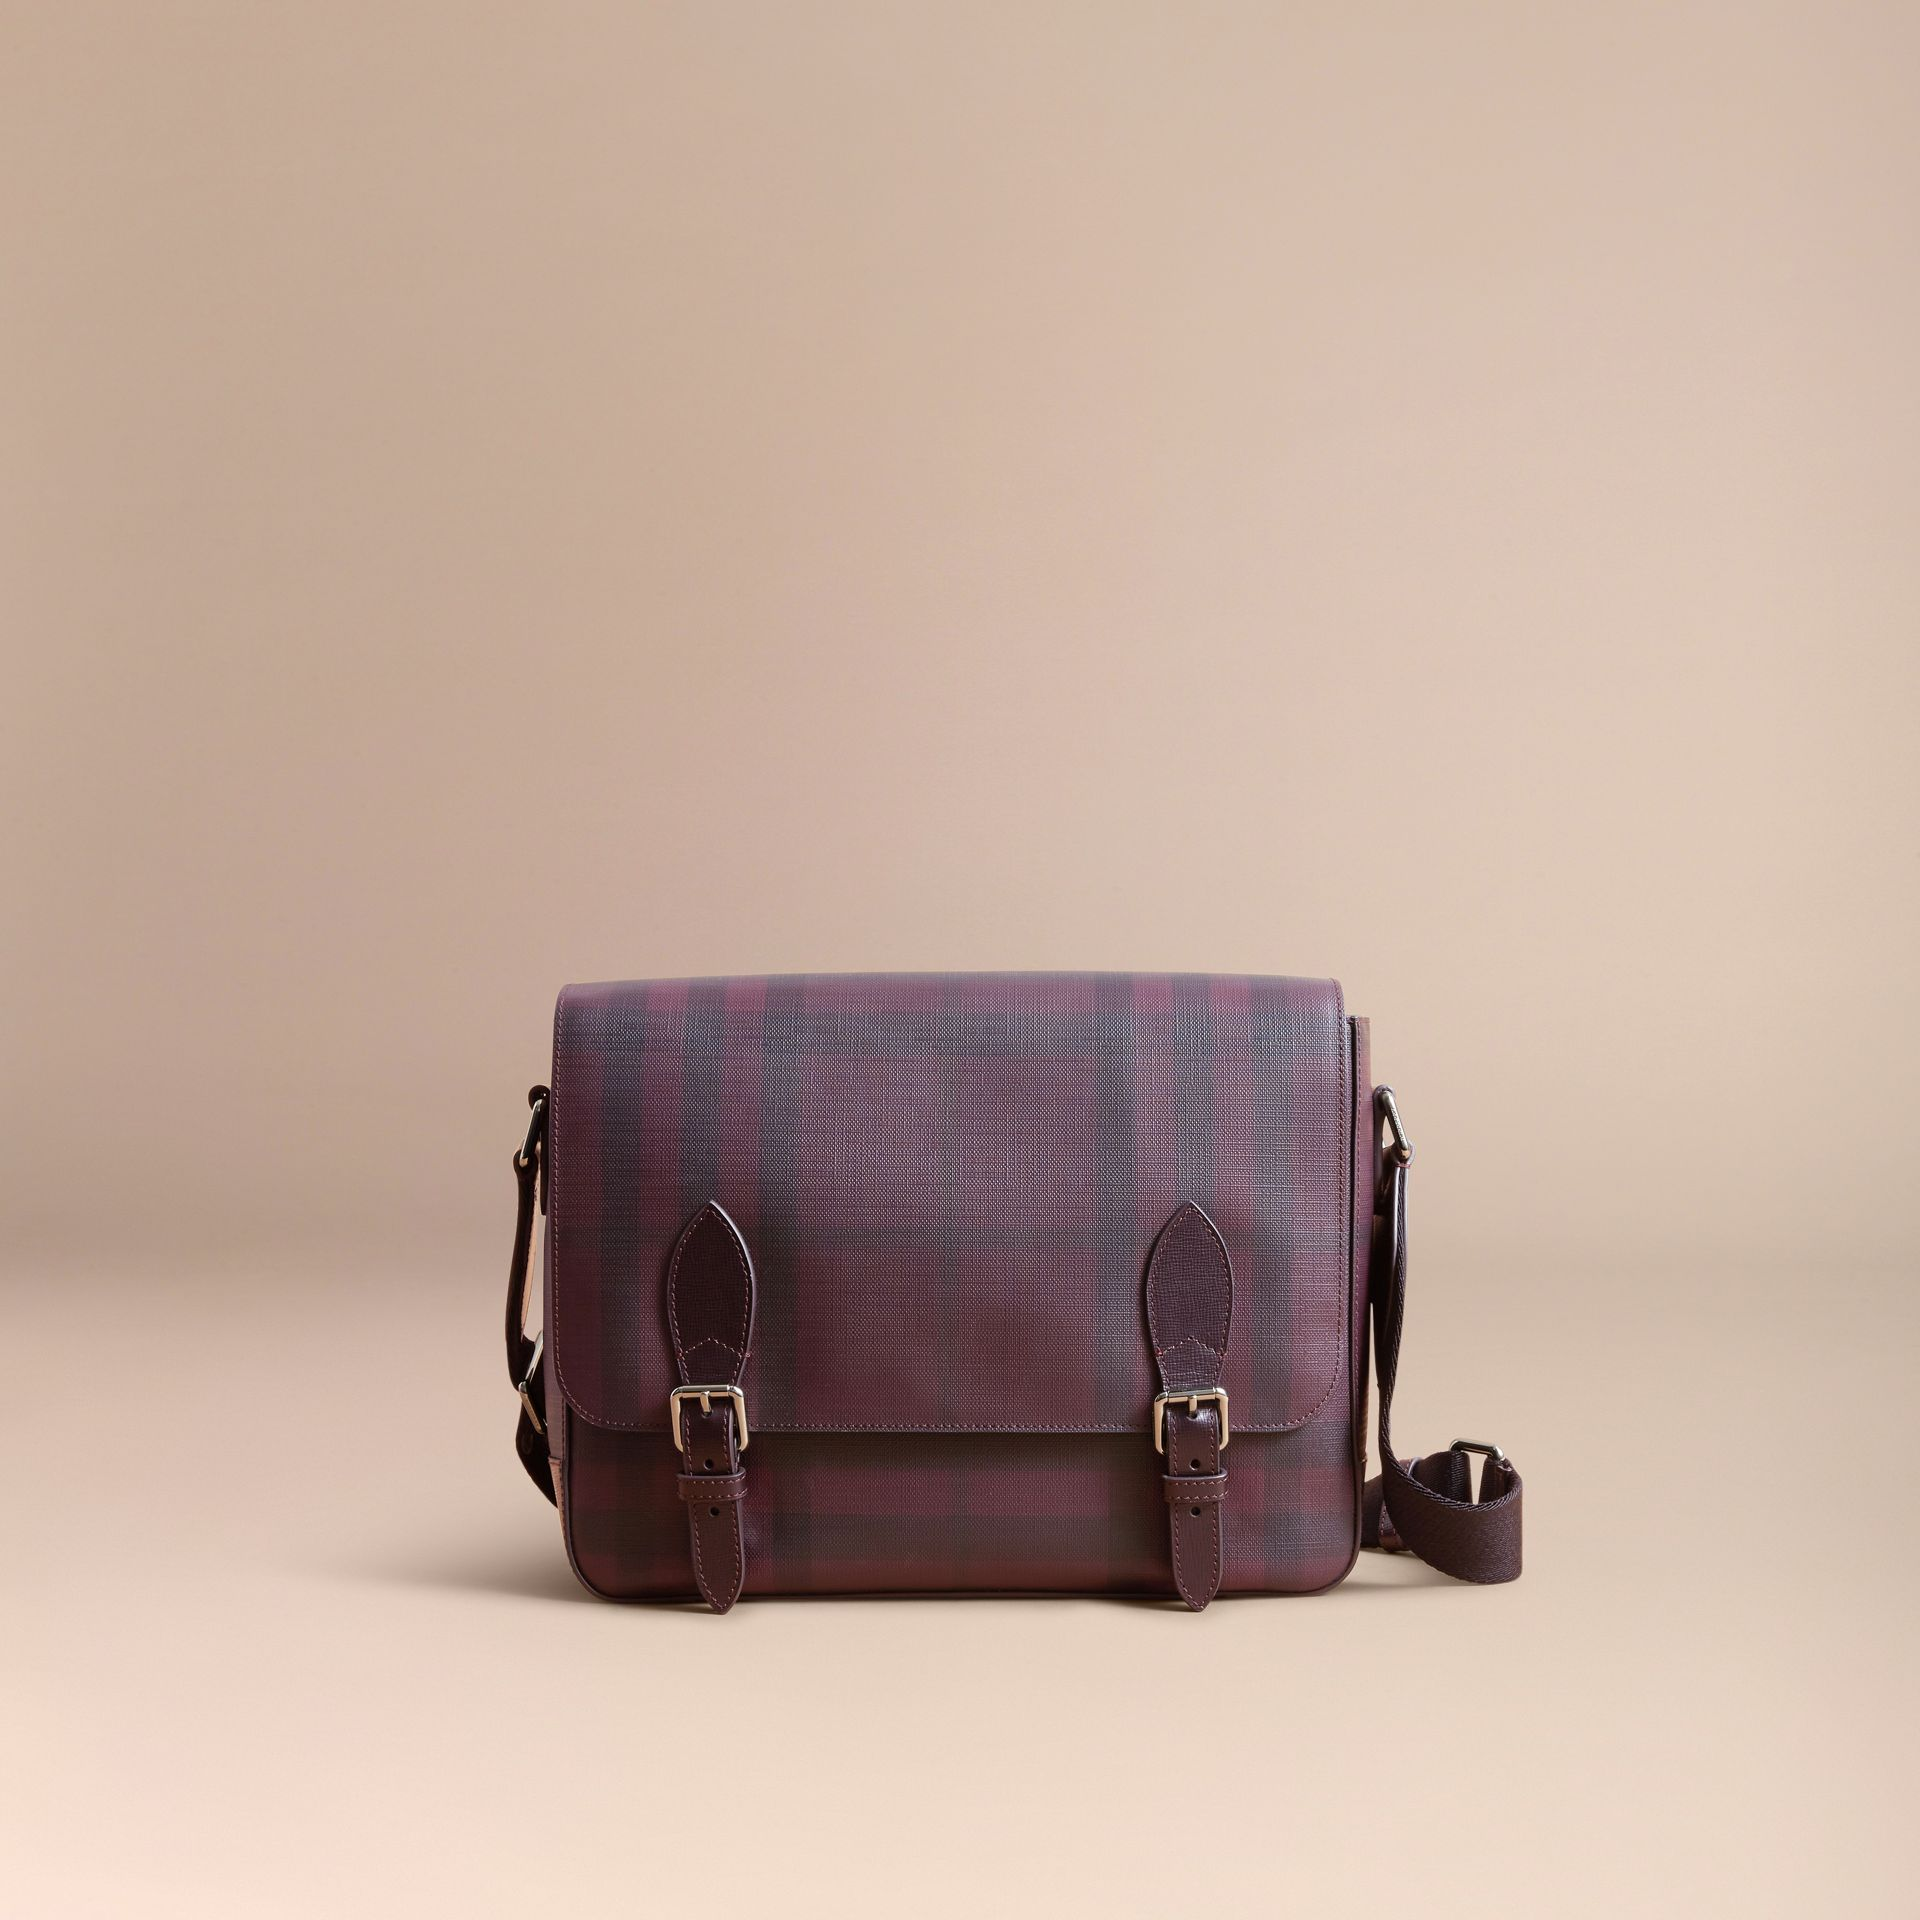 Medium Leather Trim London Check Messenger Bag in Deep Claret - Men | Burberry - gallery image 7